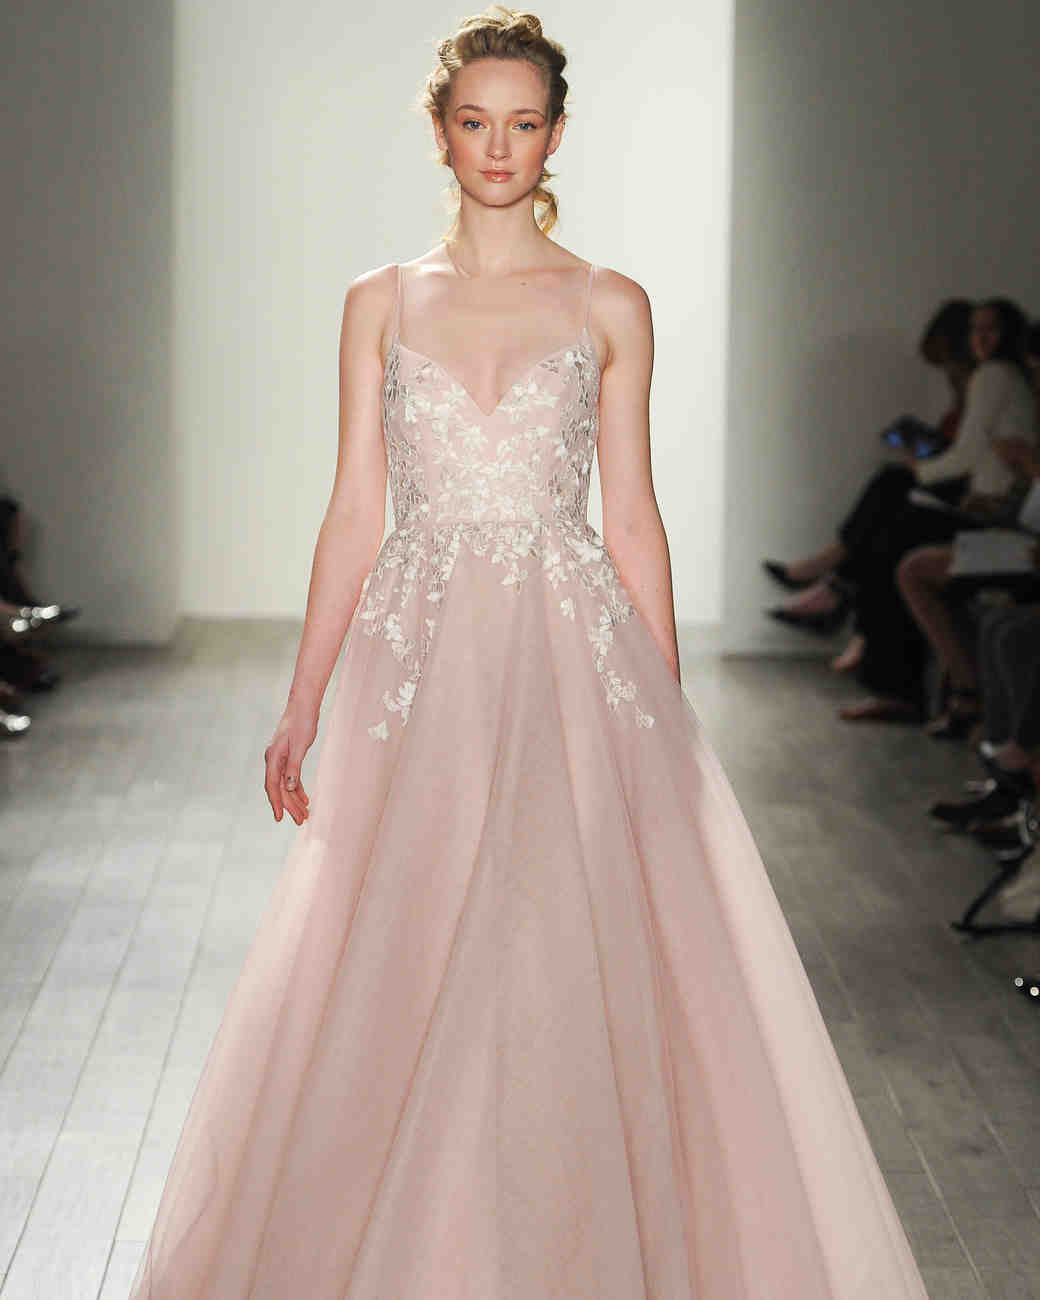 Dress Gowns For Weddings: Blush By Hayley Paige Fall 2017 Wedding Dress Collection